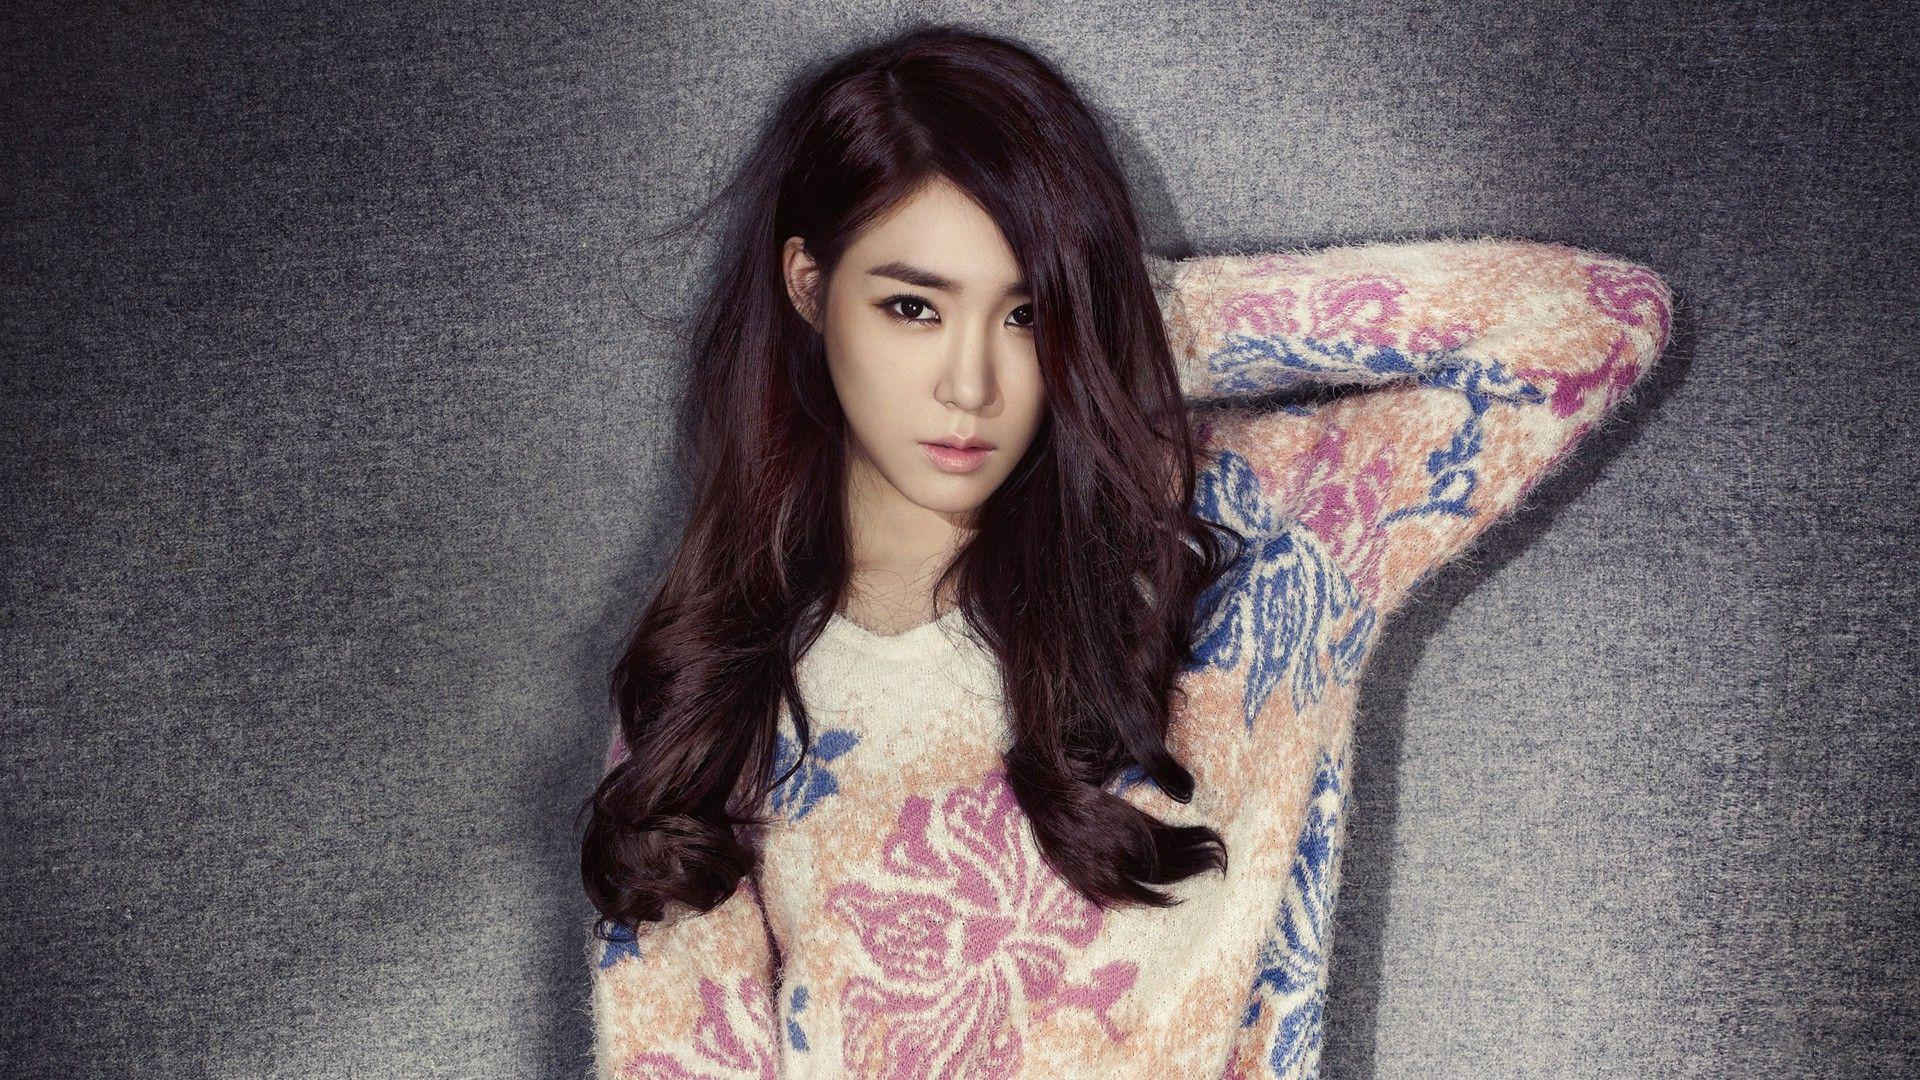 Snsd Tiffany Wallpapers Wallpaper Cave HD Wallpapers Download Free Images Wallpaper [1000image.com]